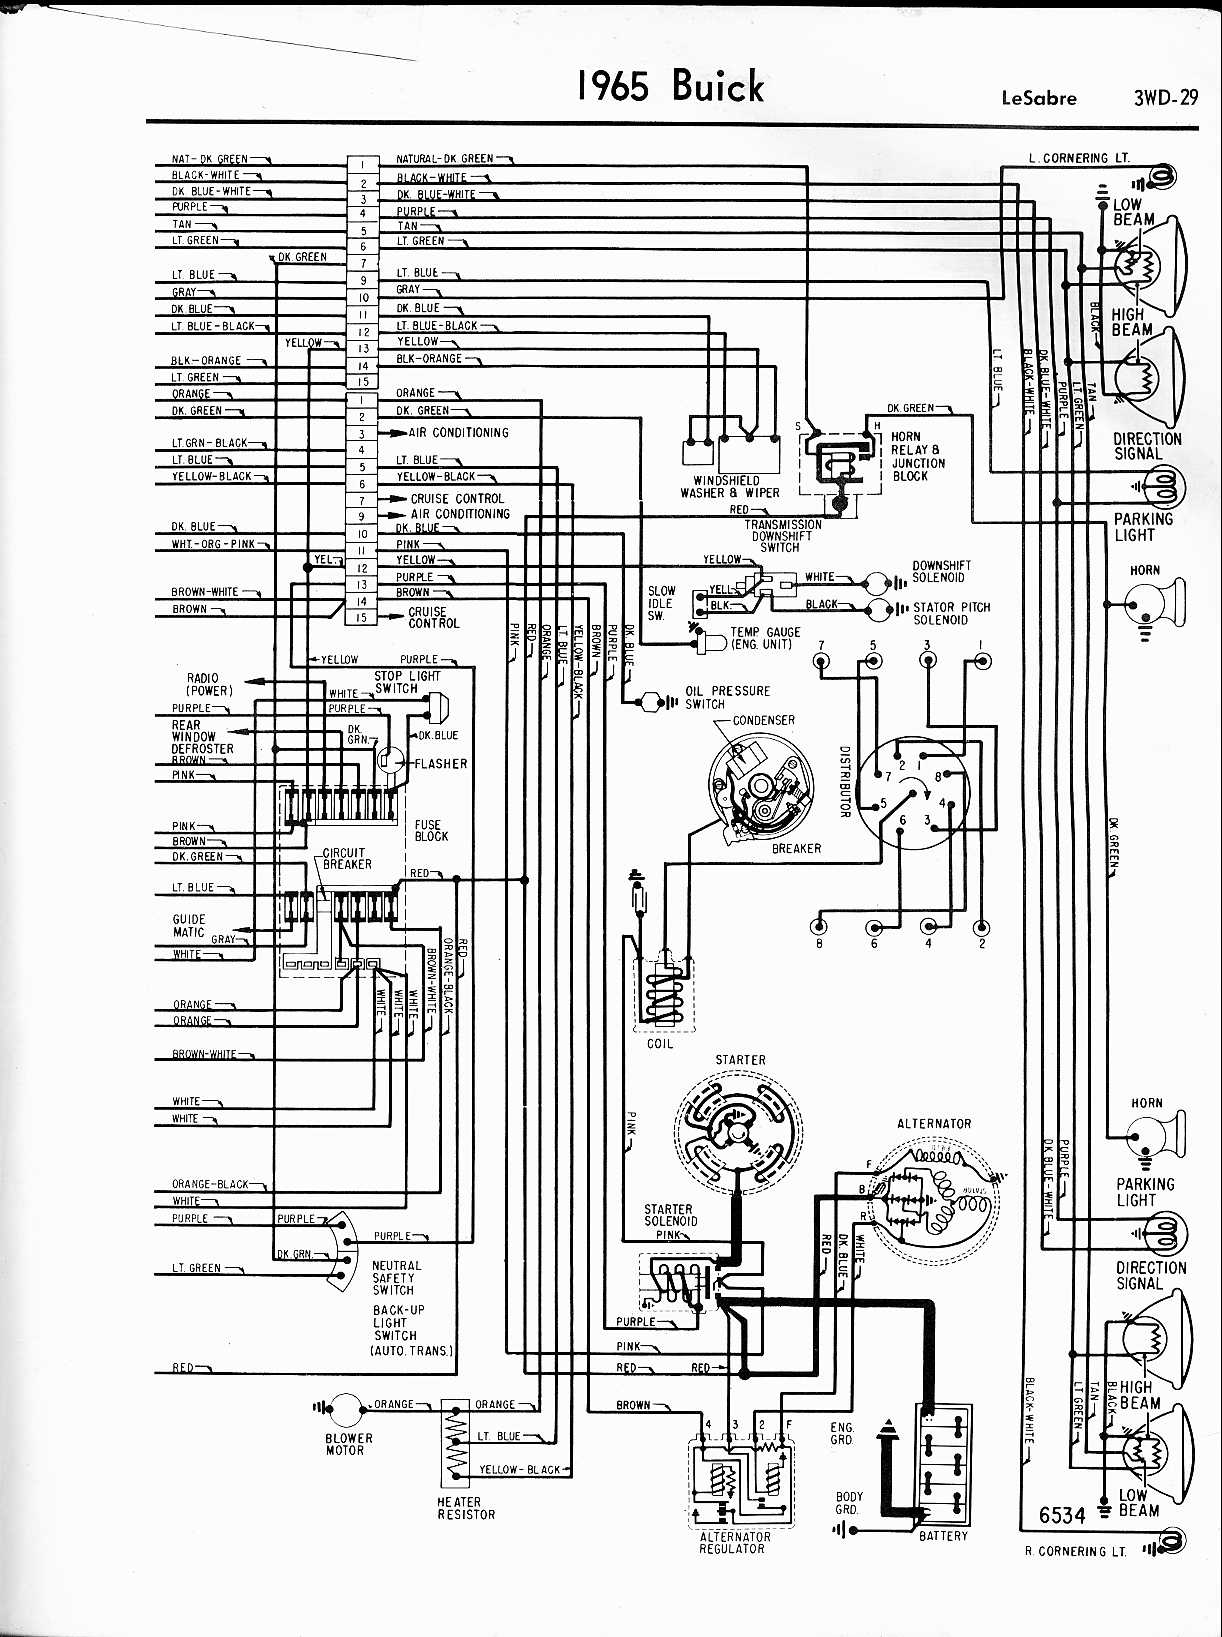 [SCHEMATICS_43NM]  916 2002 Honda Accord Wiper Wiring Diagram | Wiring Library | Honda Accord Wiper Wiring Diagram |  | Wiring Library